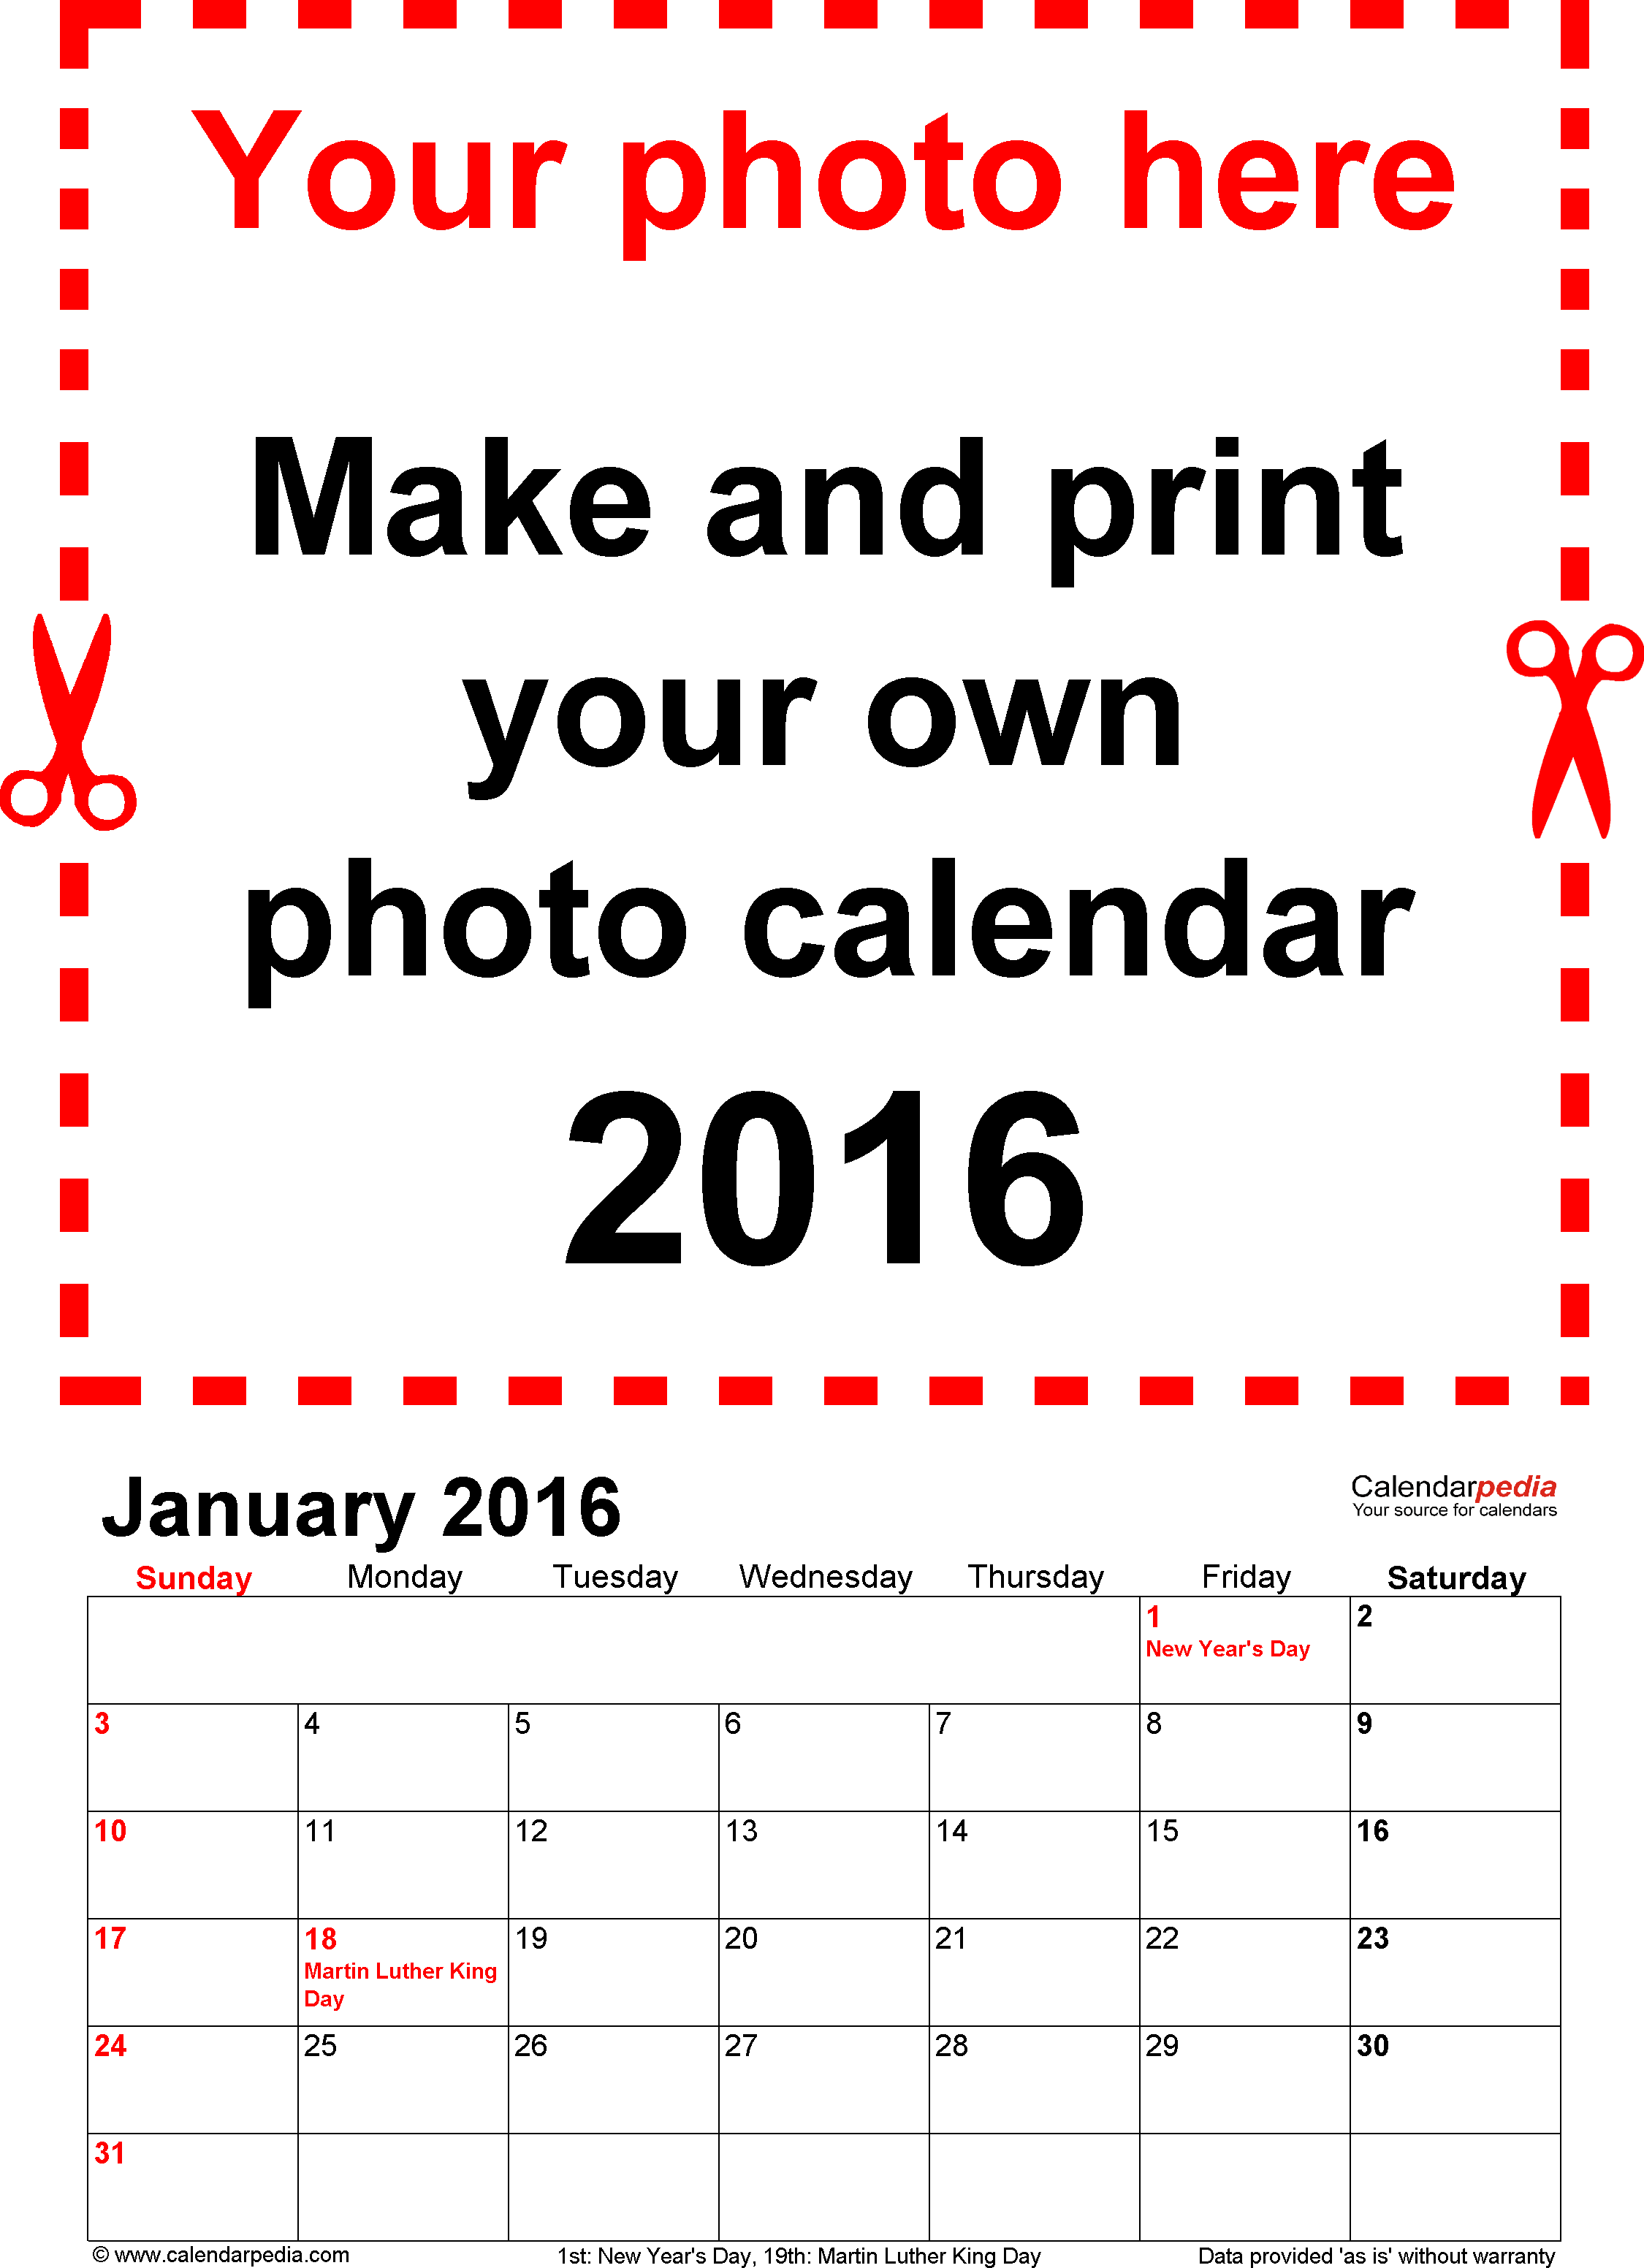 template 1 photo calendar 2016 for word 12 pages portrait format standard